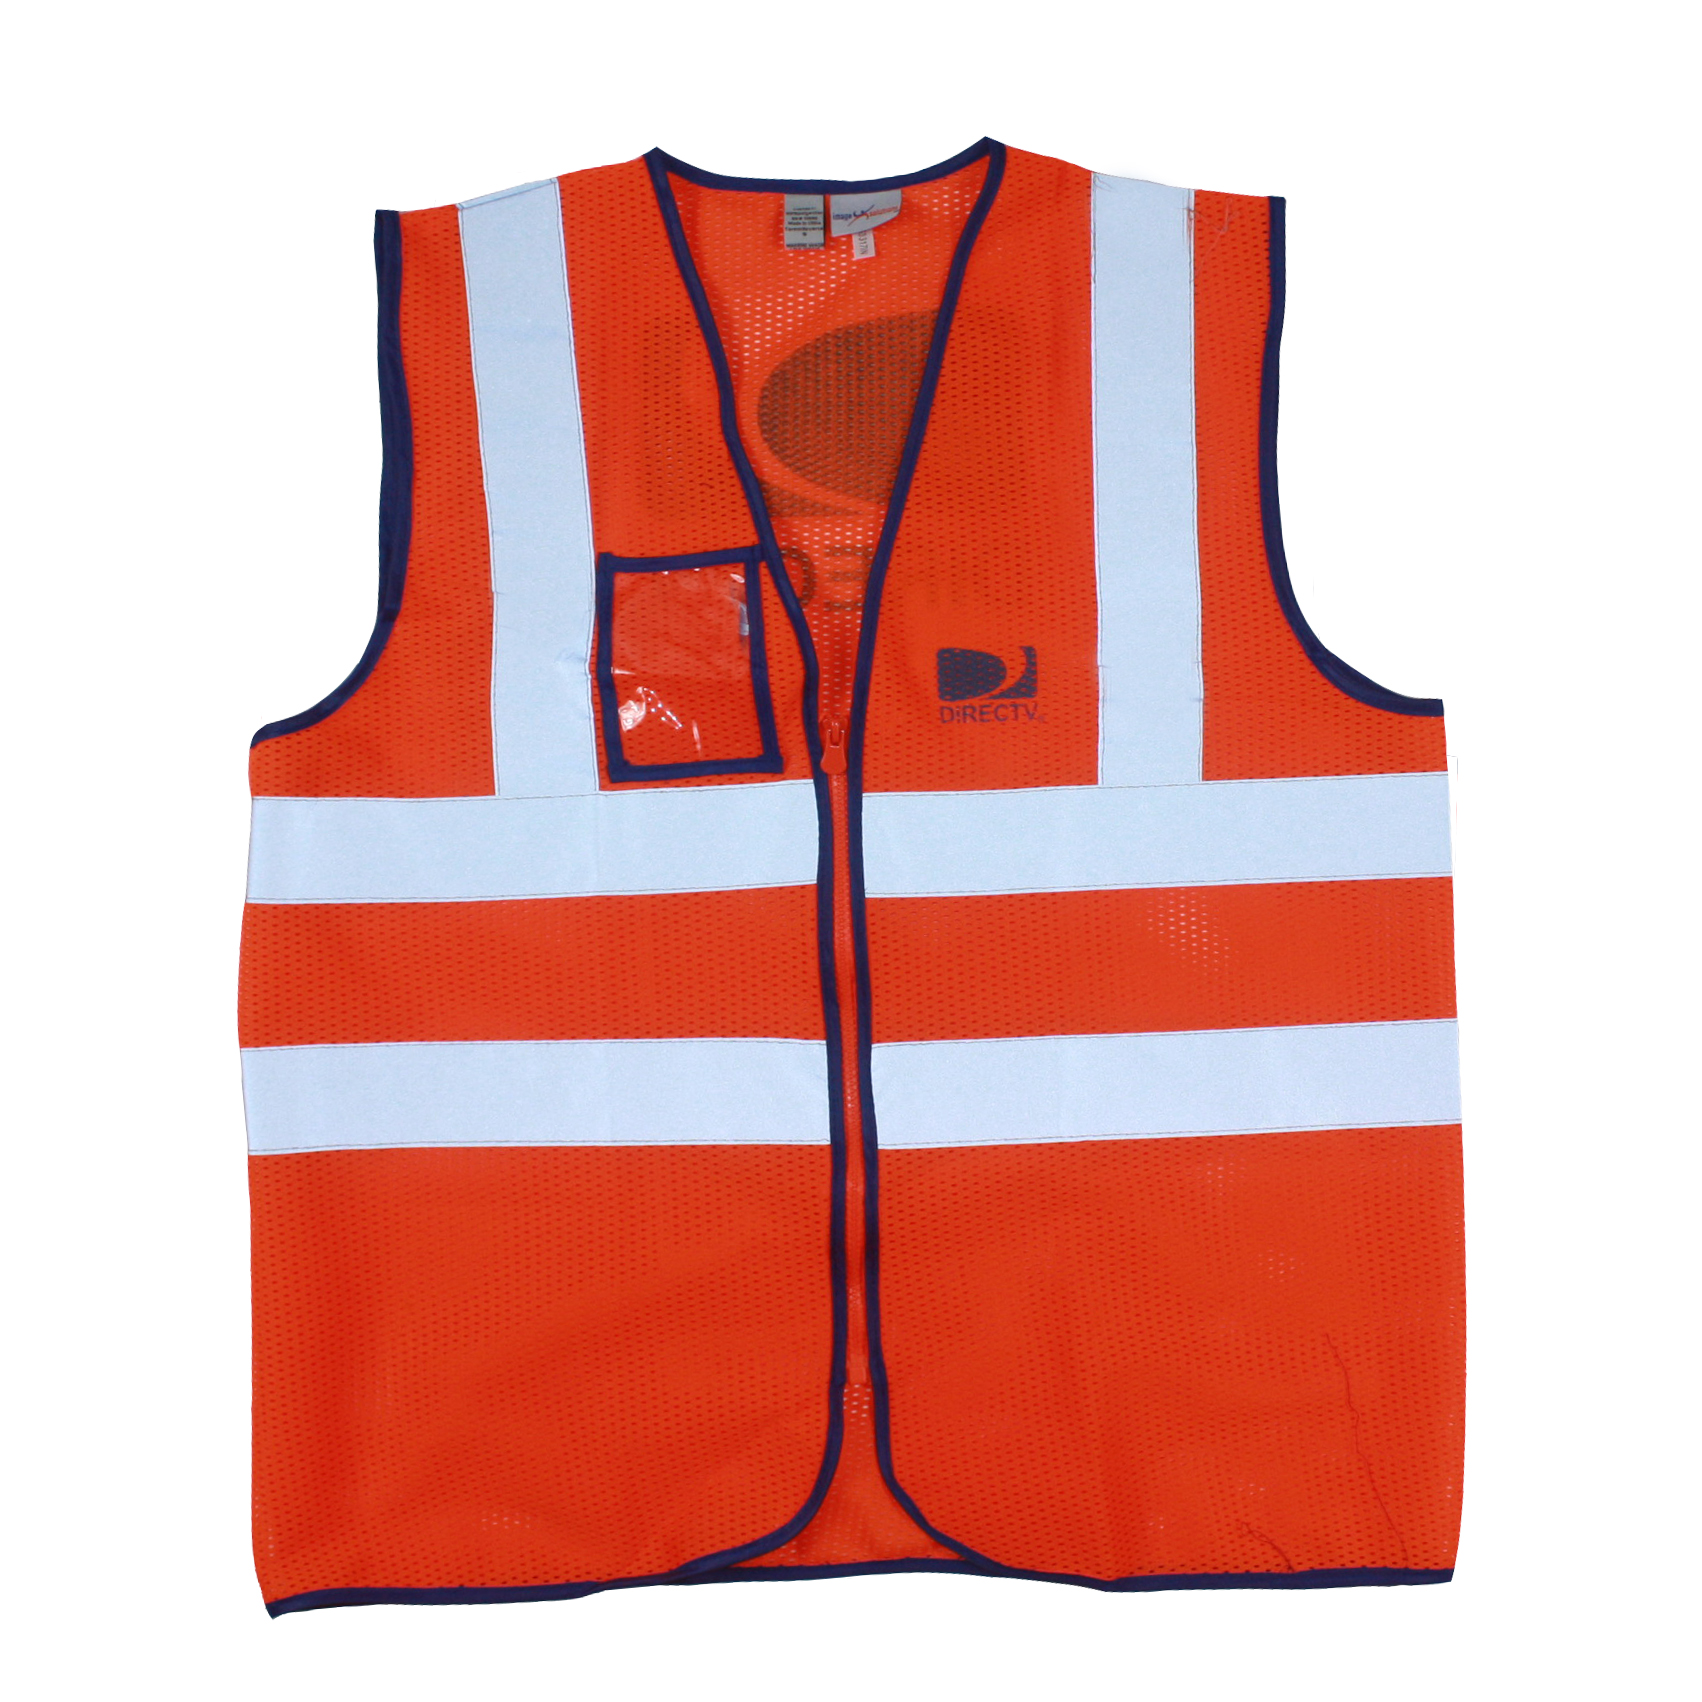 DIRECTV Safety Vest